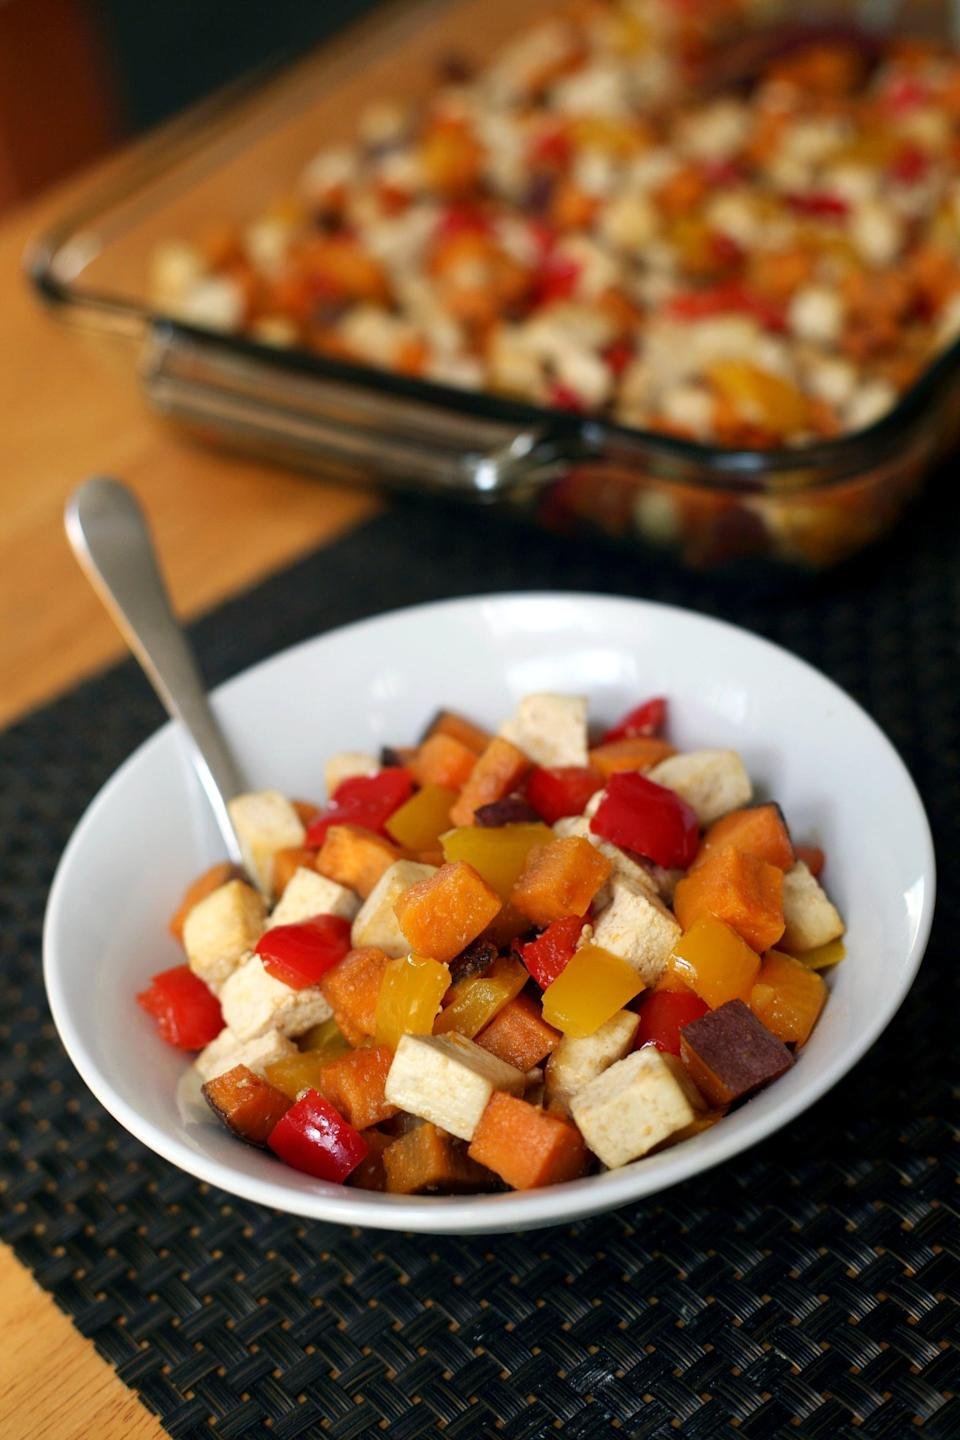 """<p>All you need for this recipe are basically three ingredients, one pan, and your oven.</p> <p><strong>Get the recipe:</strong> <a href=""""https://www.popsugar.com/fitness/Roasted-Tofu-Sweet-Potato-Pepper-1-Pan-Meal-43540555"""" class=""""link rapid-noclick-resp"""" rel=""""nofollow noopener"""" target=""""_blank"""" data-ylk=""""slk:roasted tofu, sweet potato, and pepper savory breakfast"""">roasted tofu, sweet potato, and pepper savory breakfast</a></p>"""